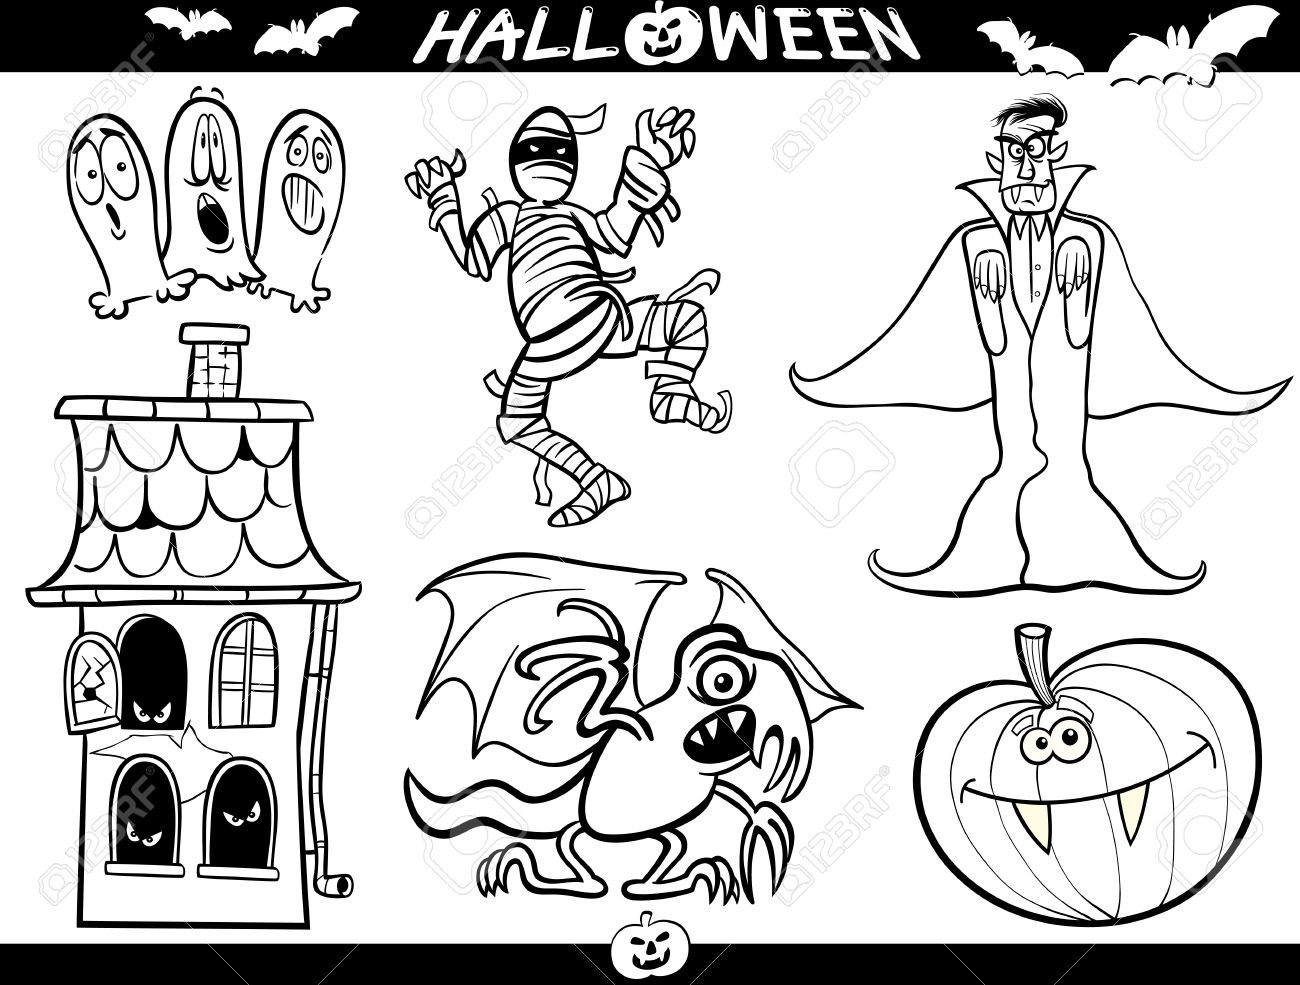 Cartoon illustration of halloween themes vampire or count dracula mummy haunted house